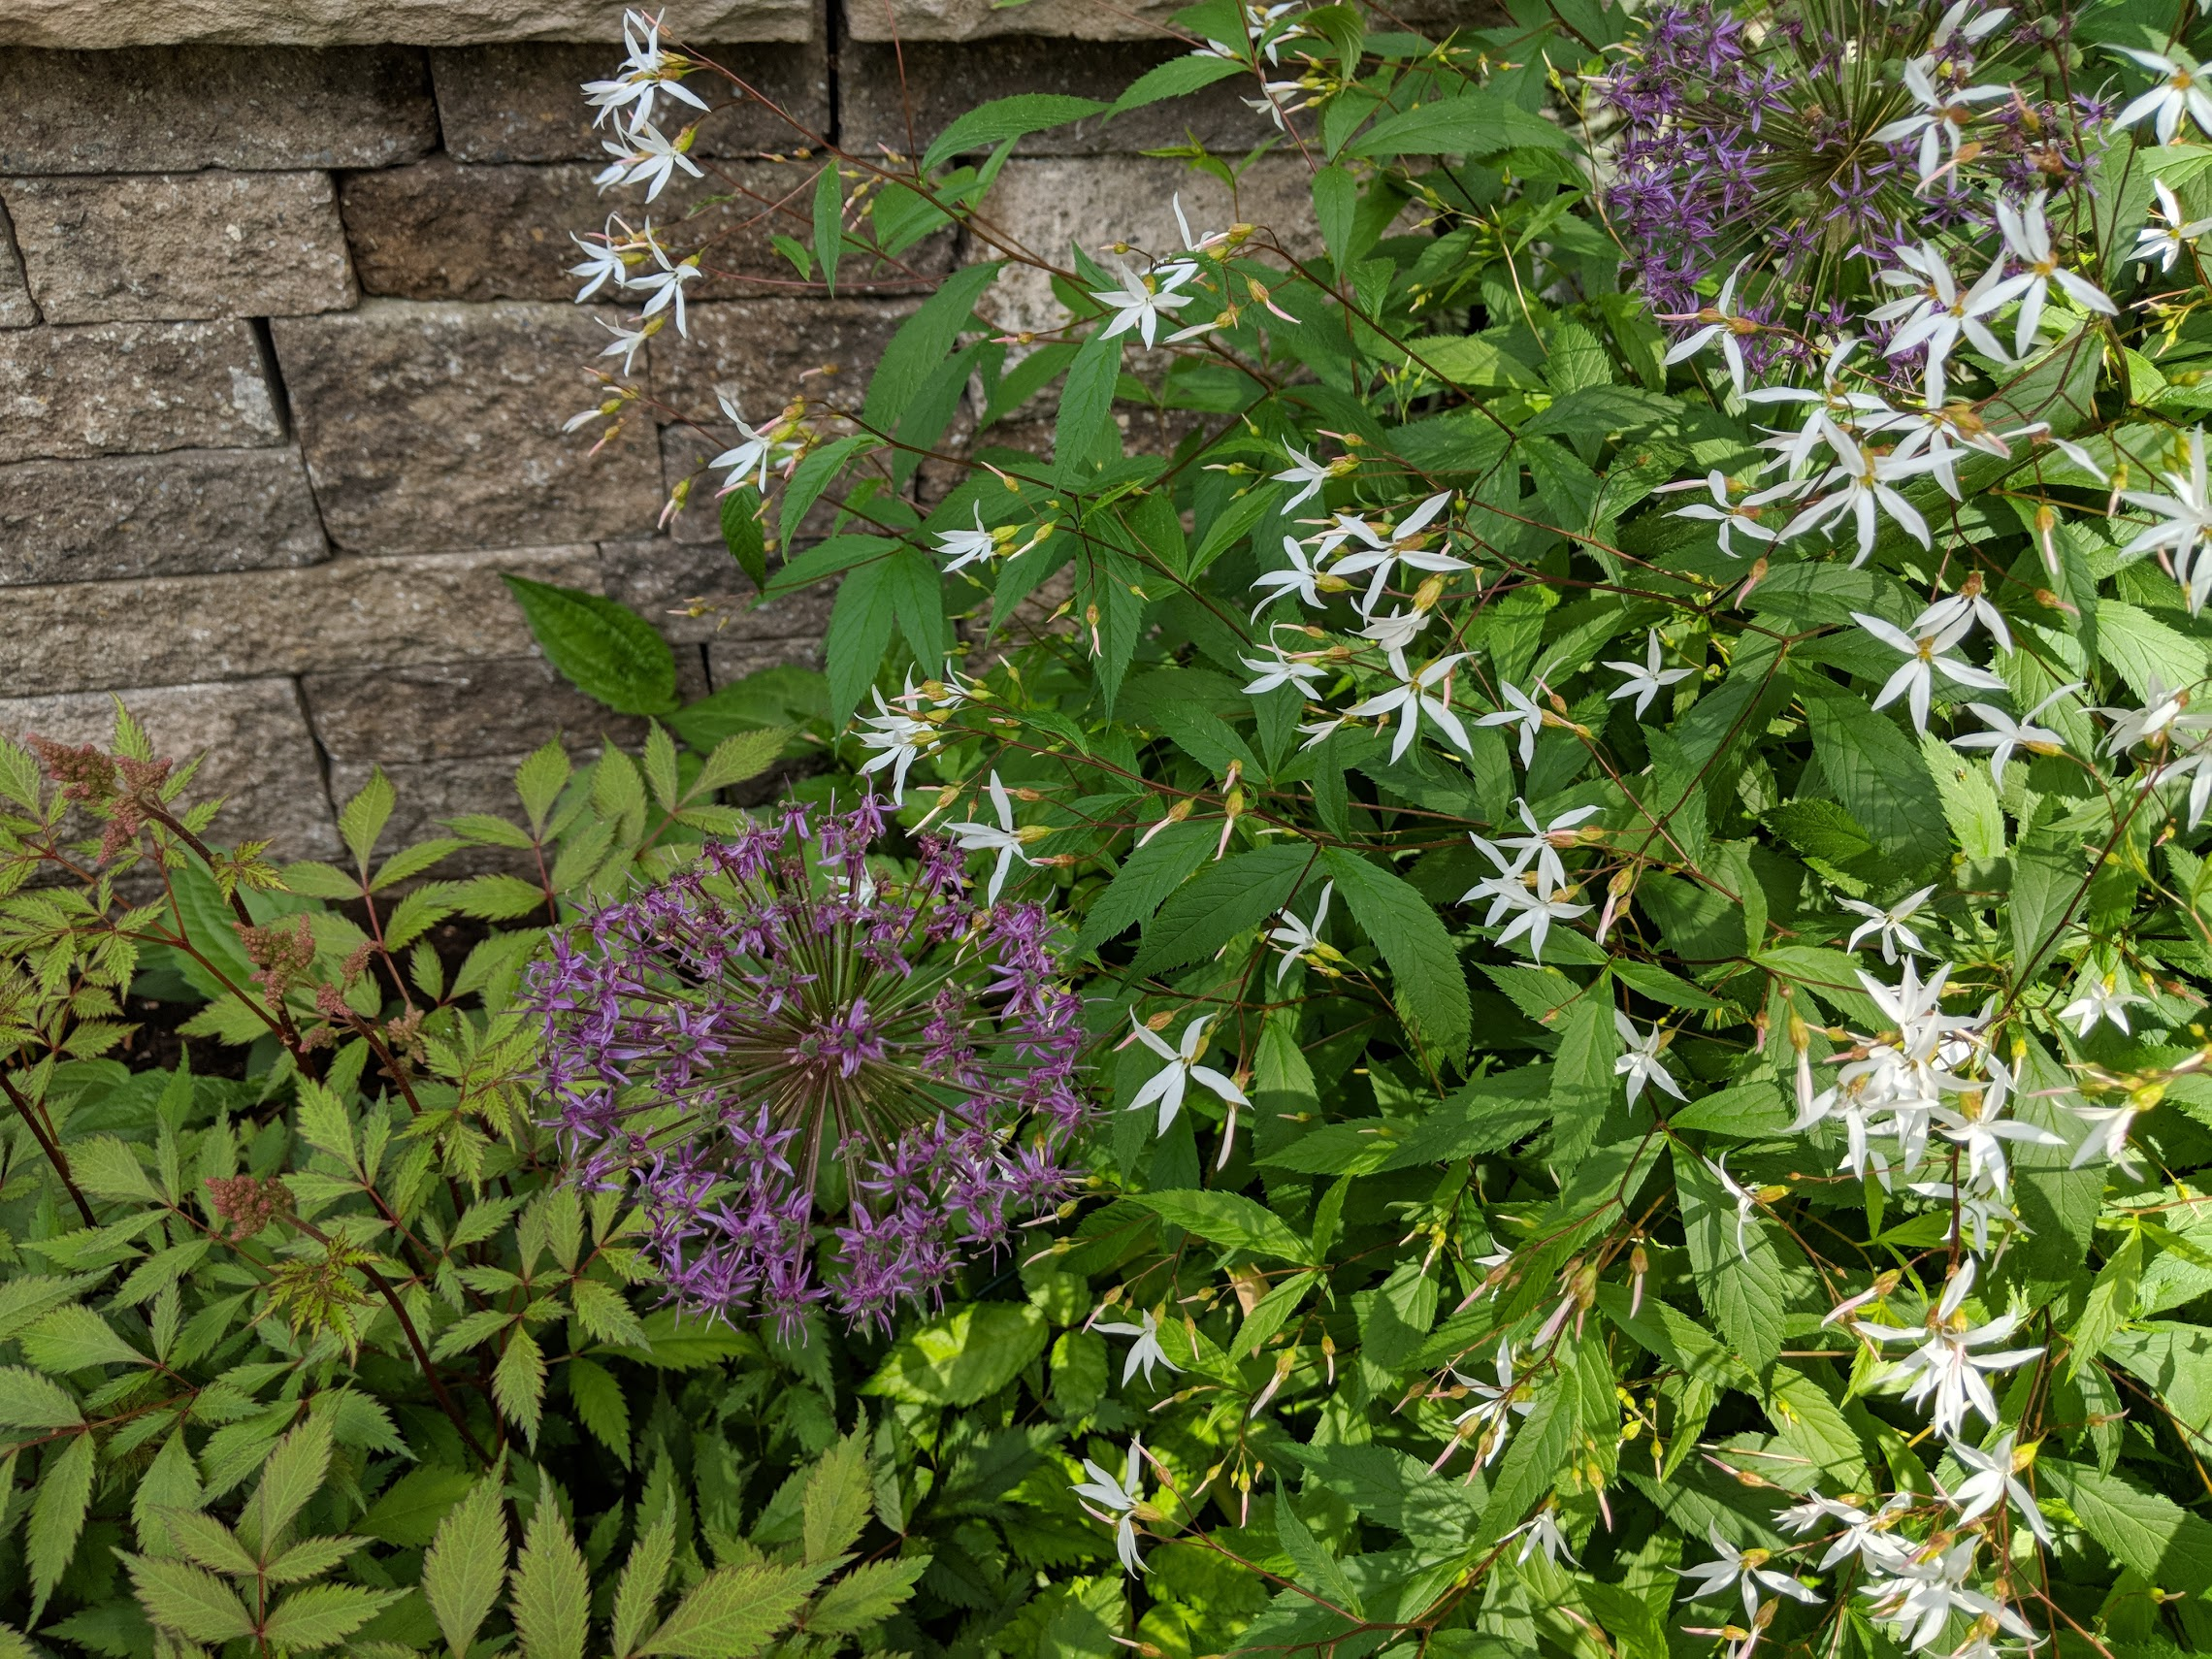 June 11: allium inter-planted with astilbe and gillenia